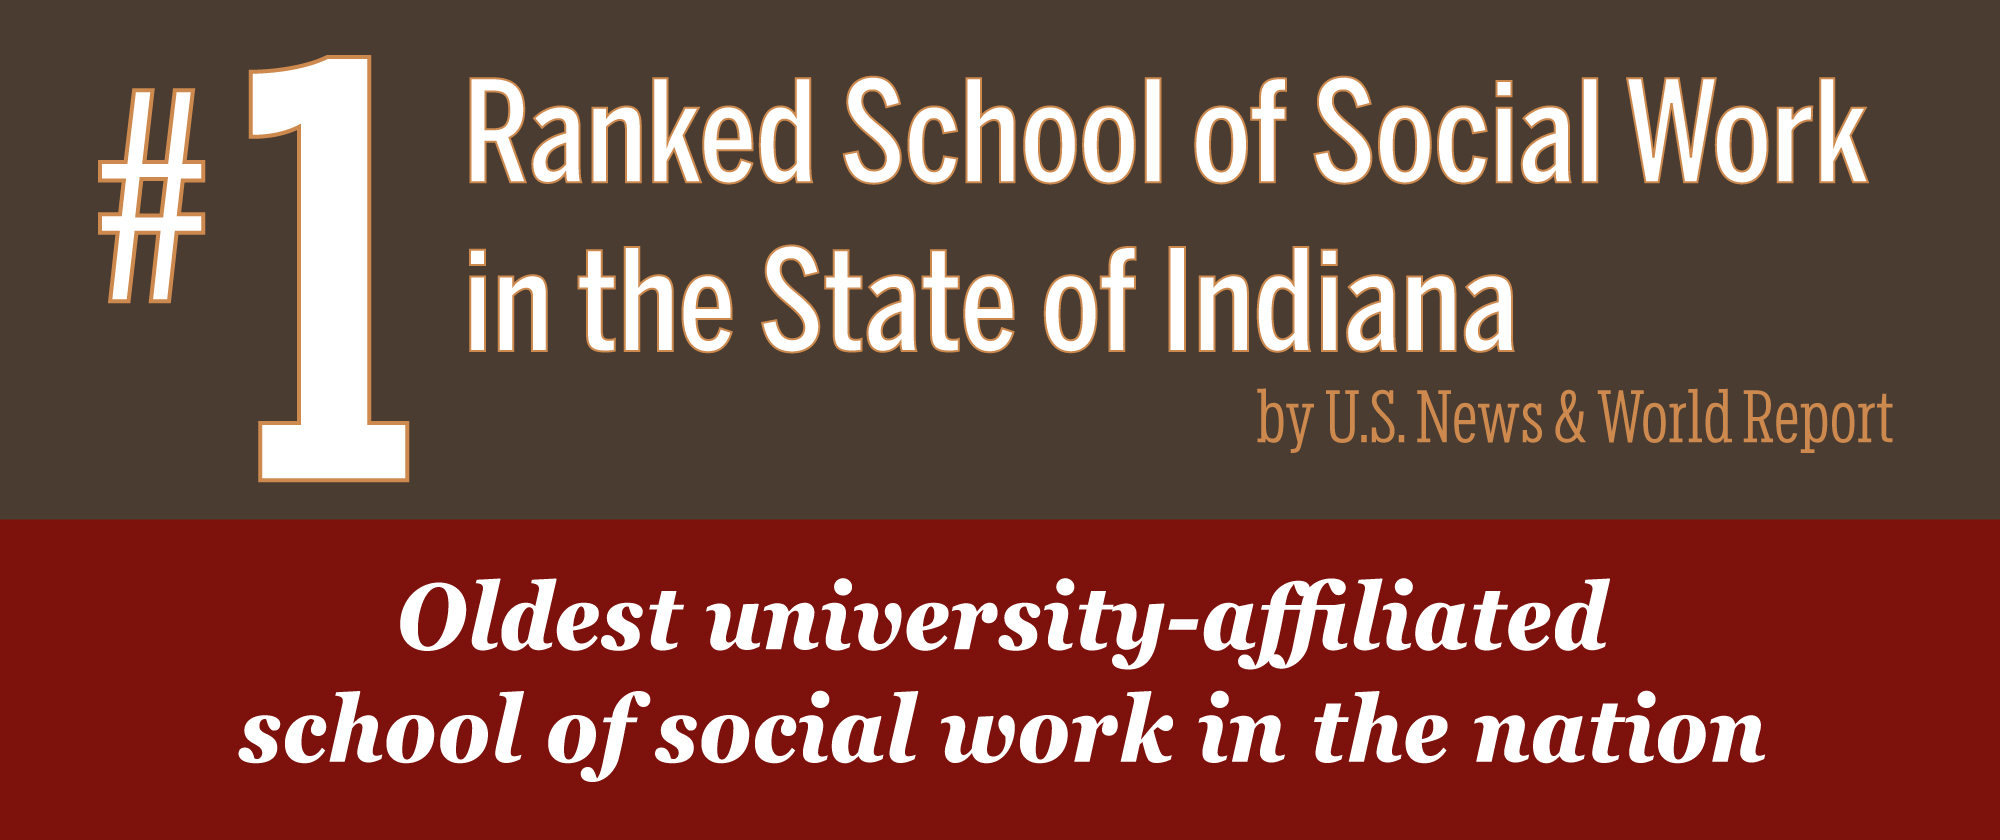 Ranked School of Social Work  in the State of Indiana